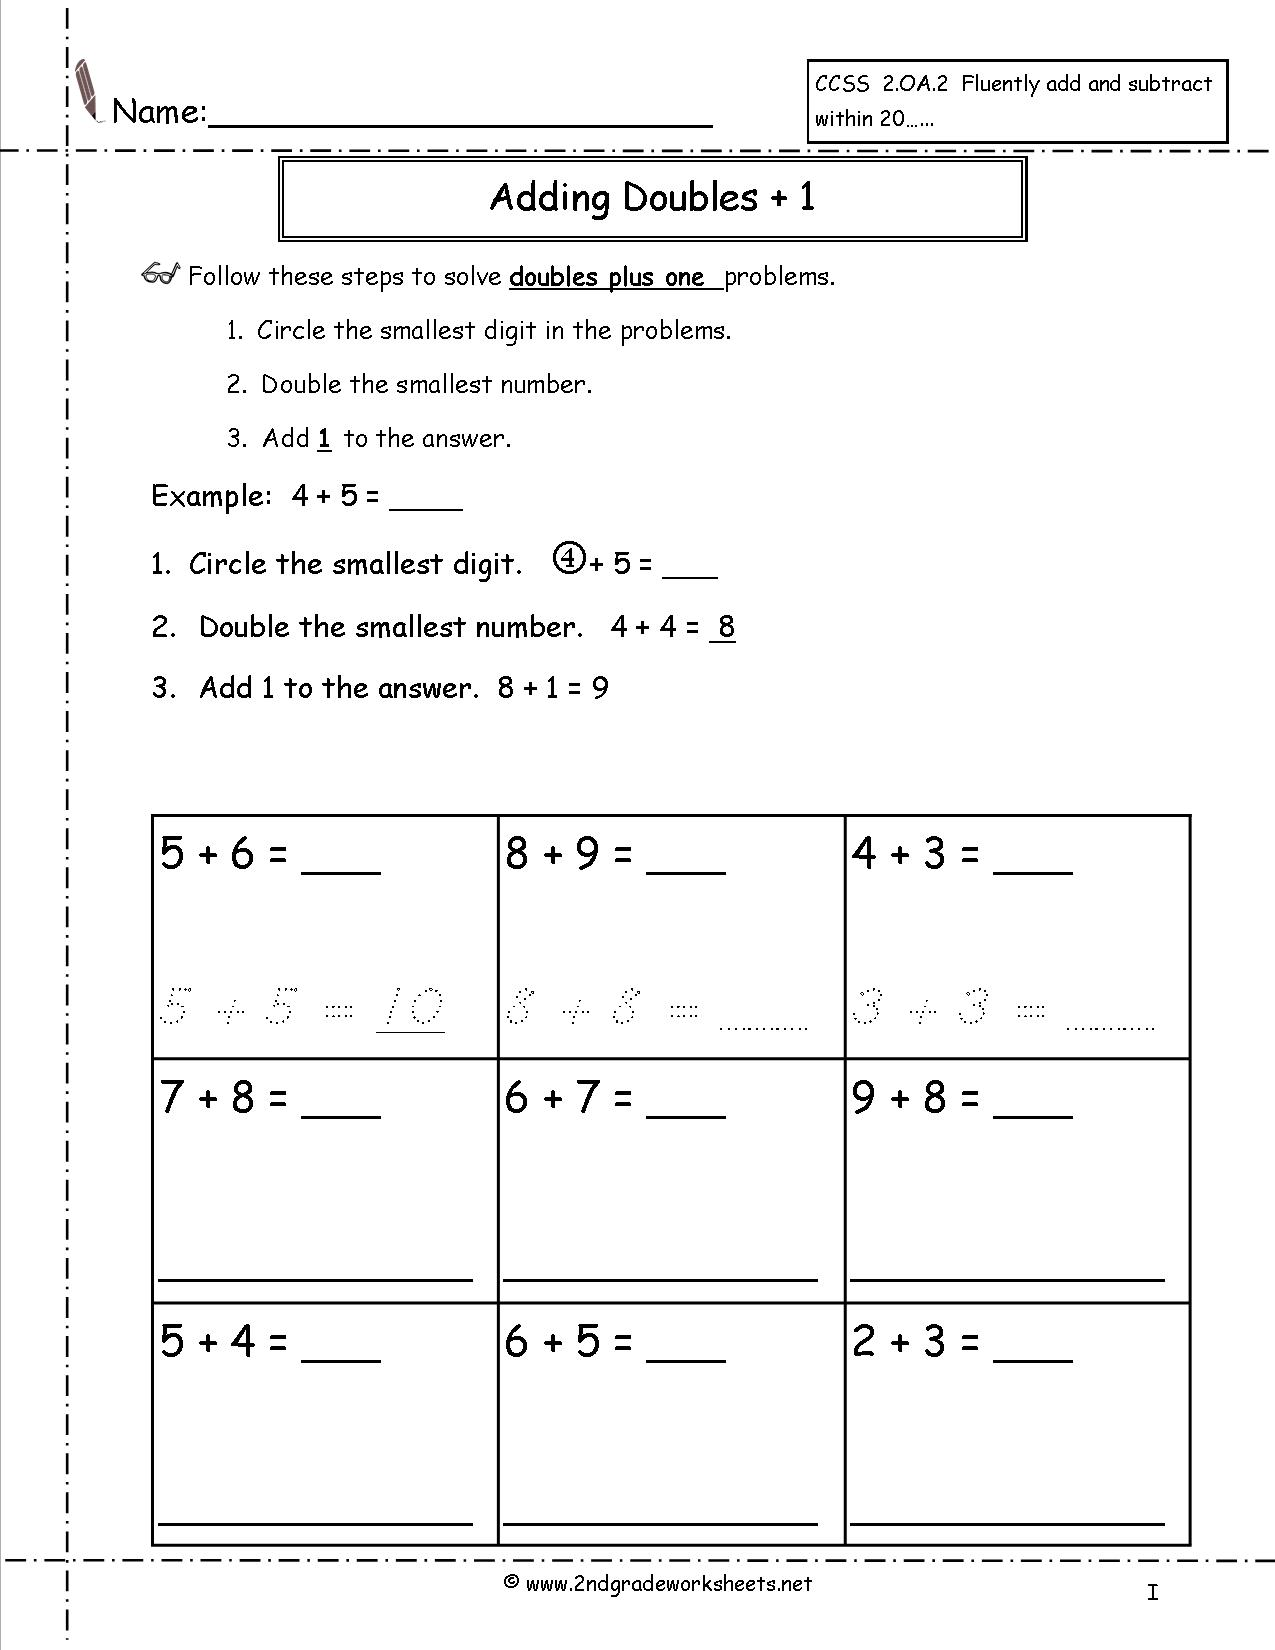 16 Best Images Of Number Fluency Worksheet